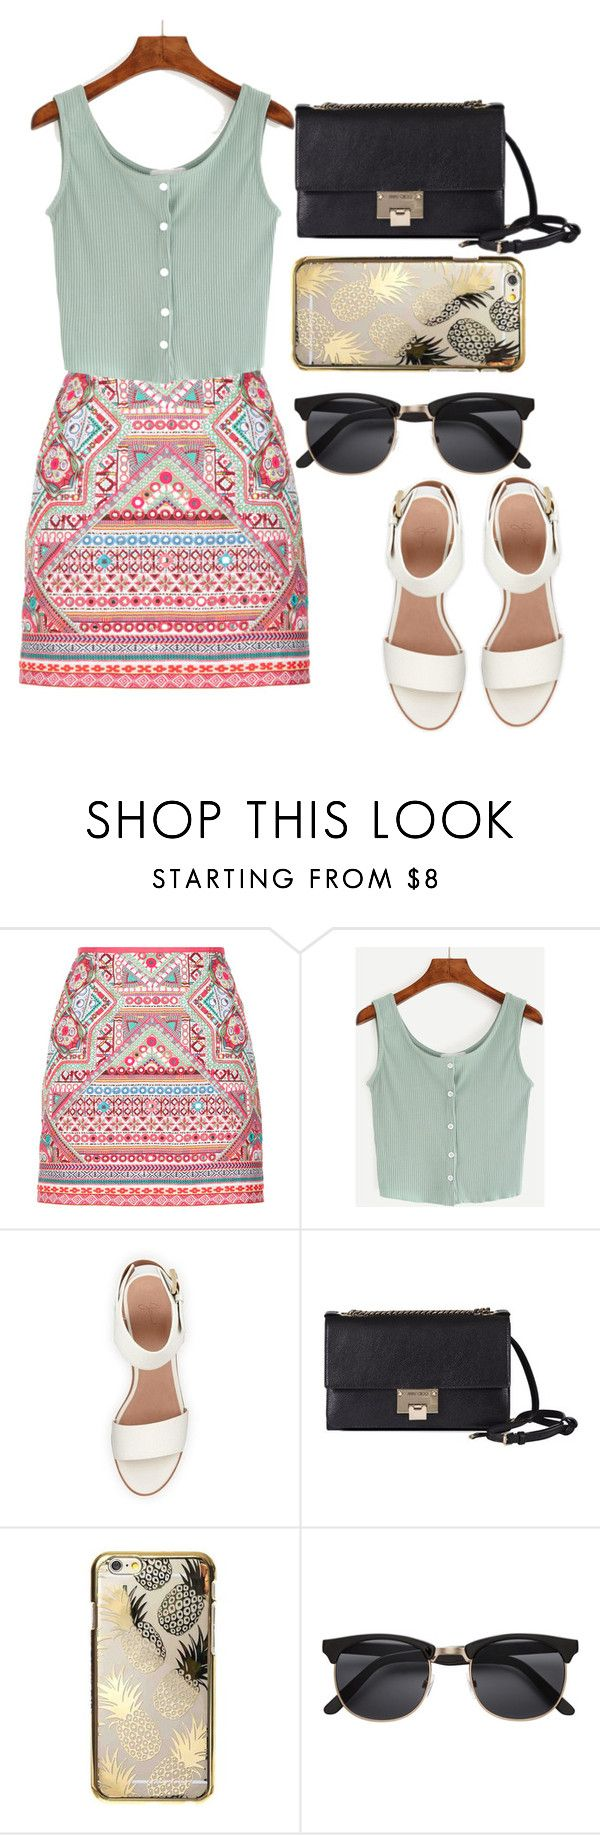 """""""Fashion"""" by camillyraiterb ❤ liked on Polyvore featuring Accessorize, BEA, Jimmy Choo, Skinnydip, moda and polyvorefashion"""